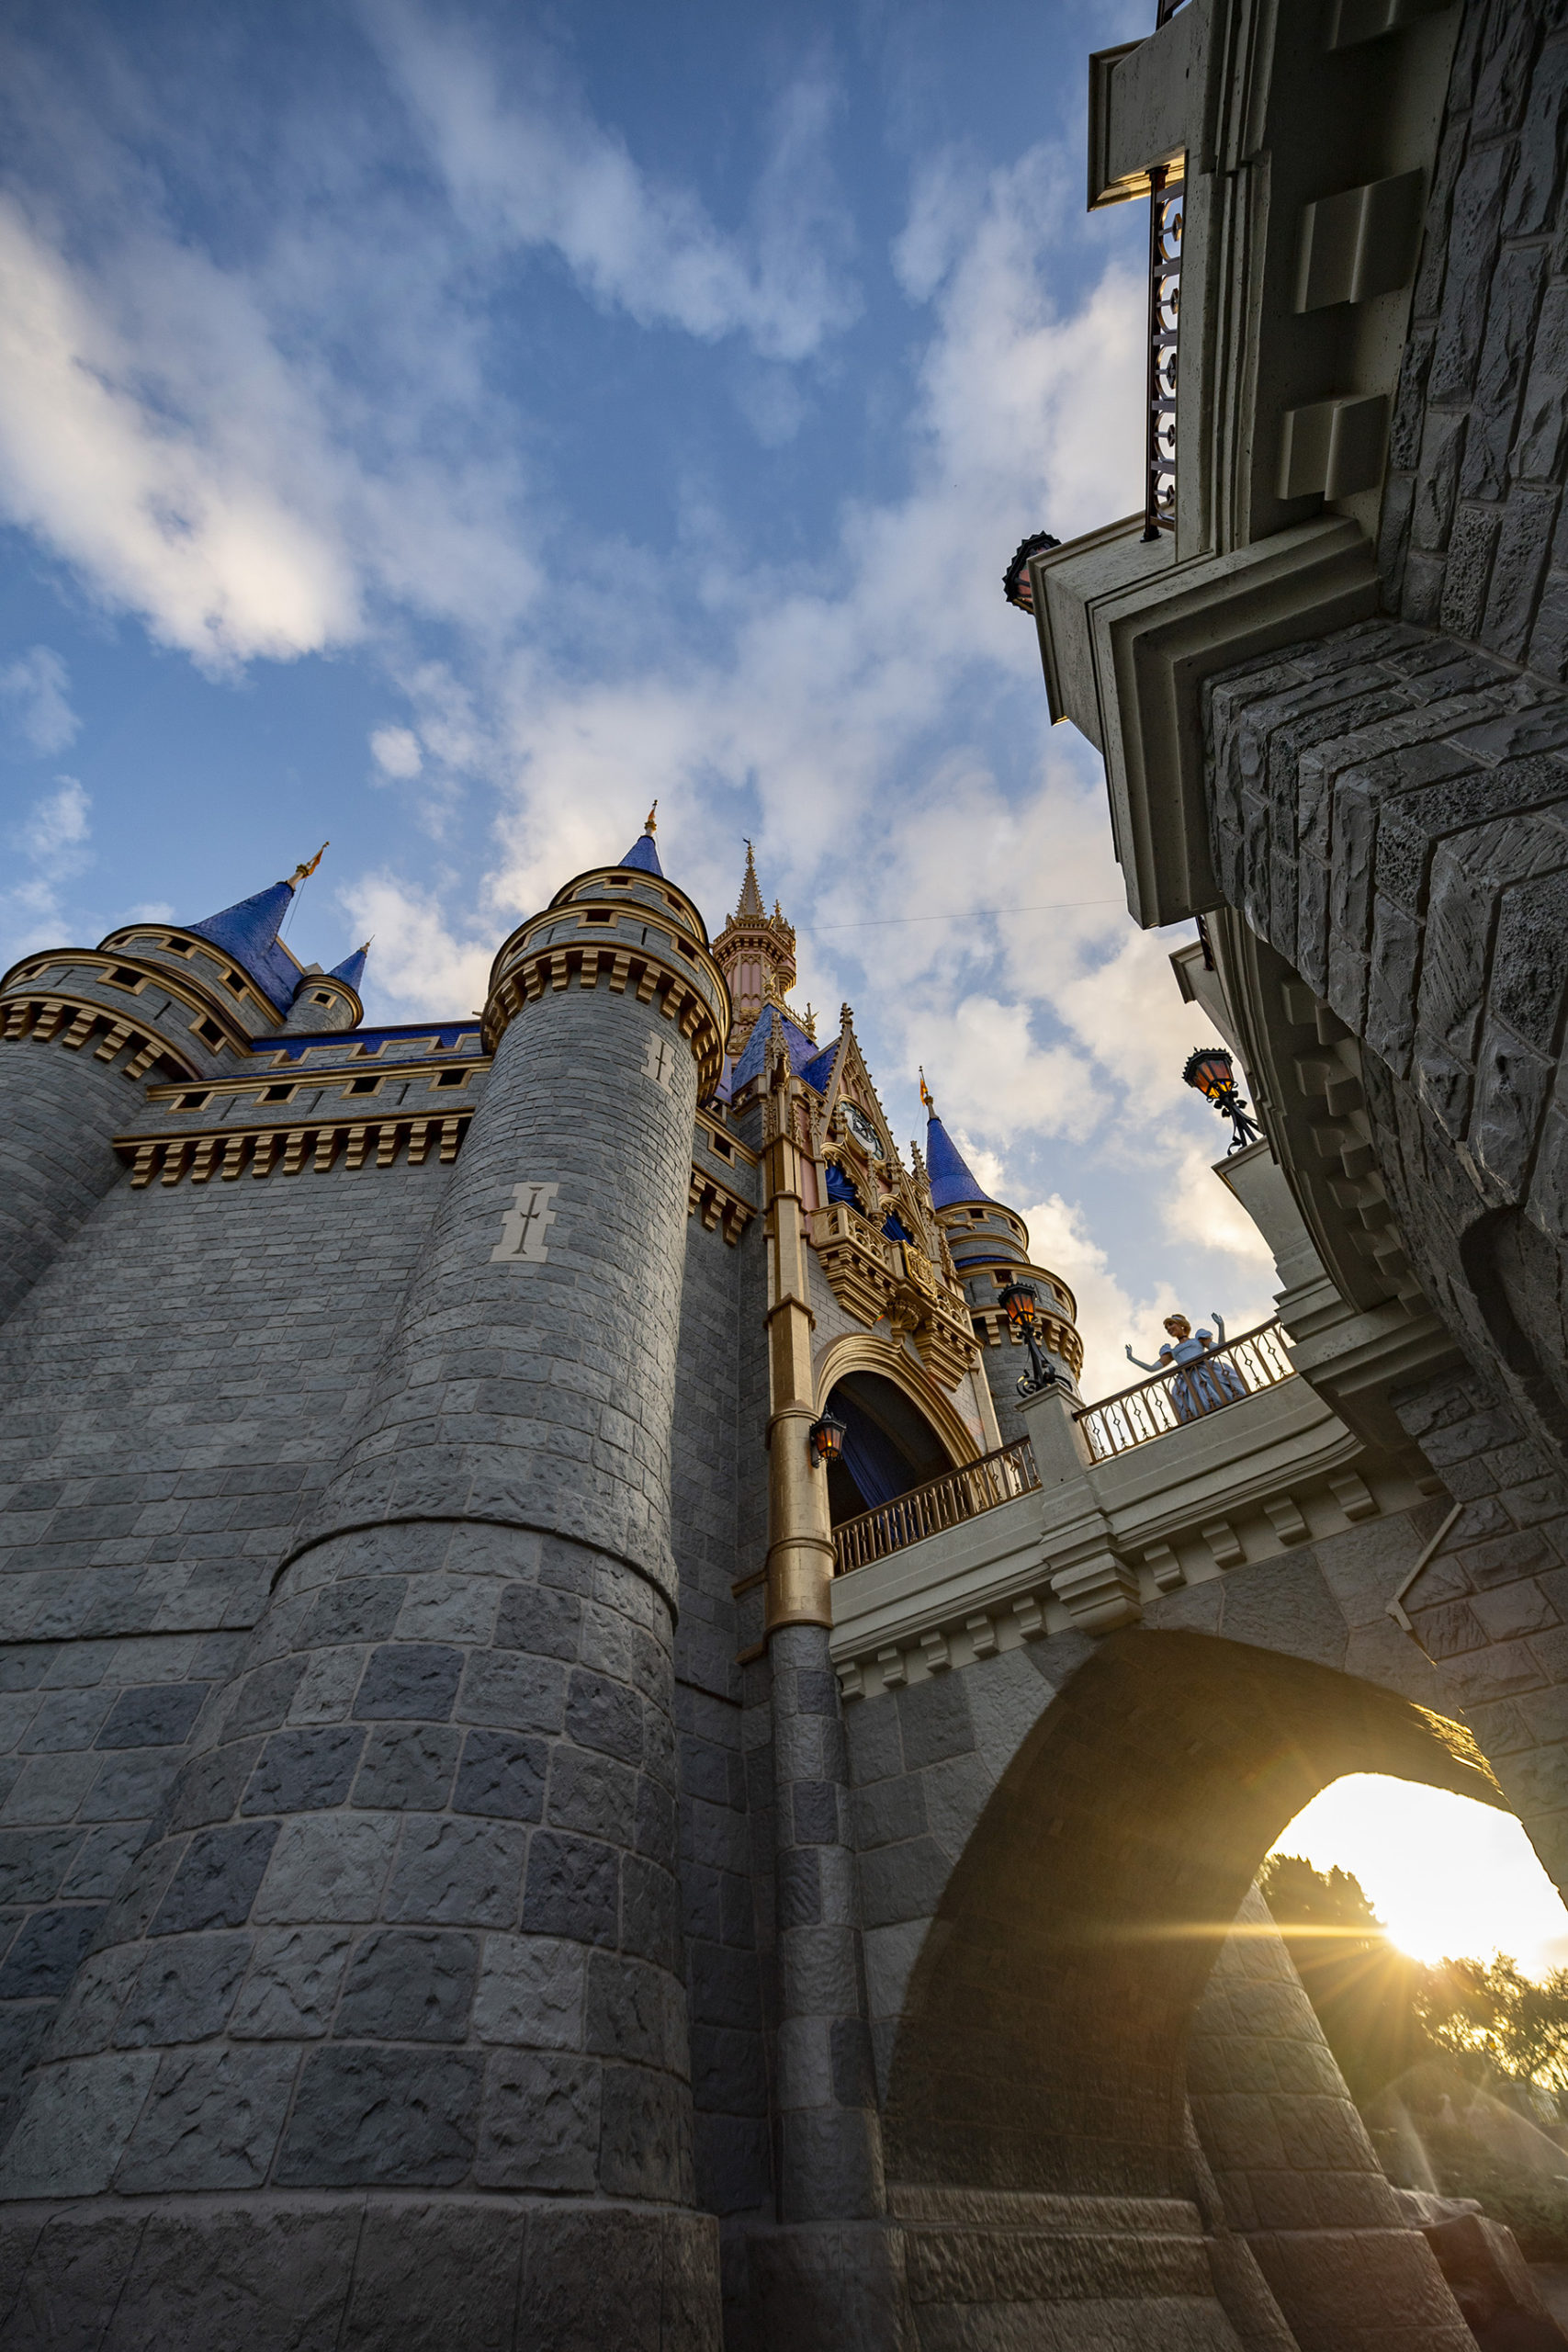 Cinderella Castle looking massive from a low perspective